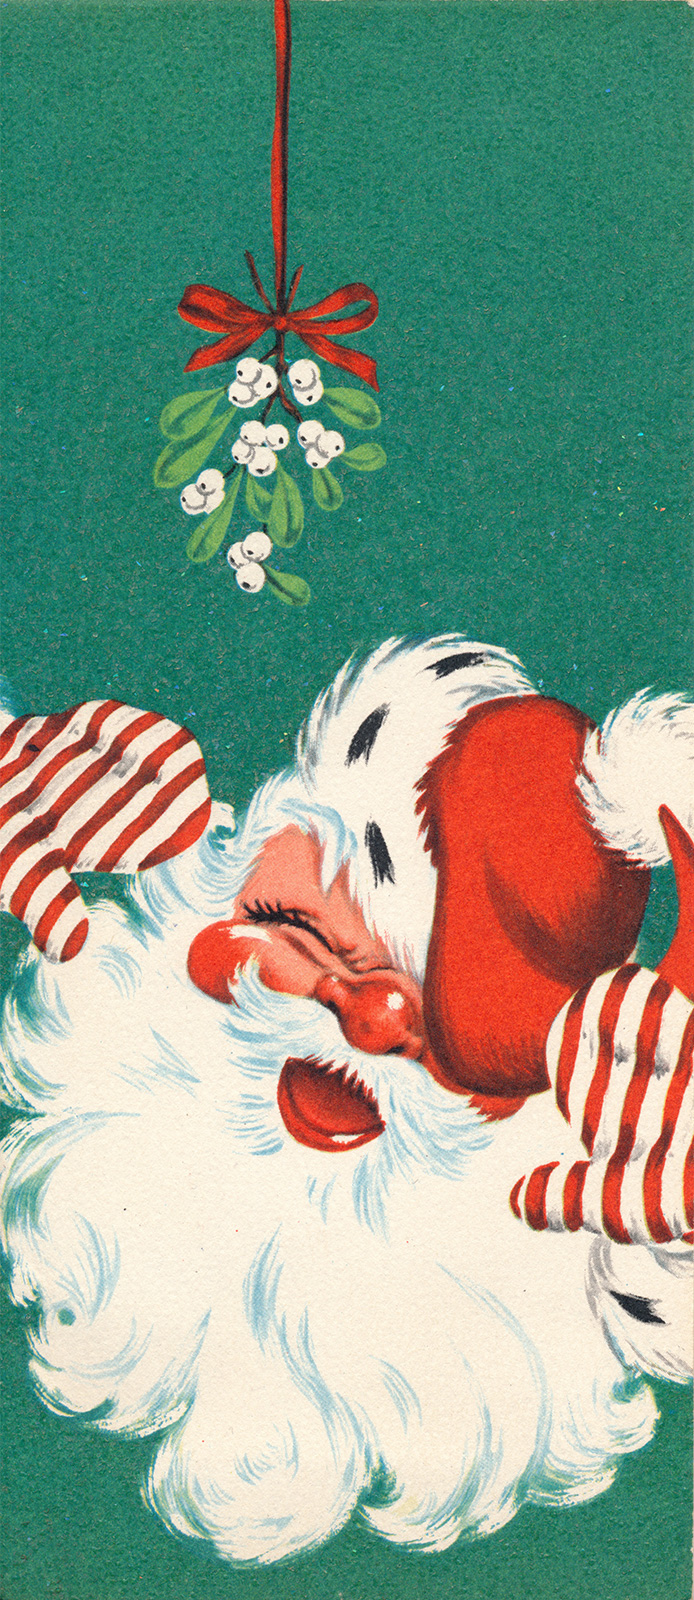 A jolly illustration of Santa is under a hanging mistletoe.